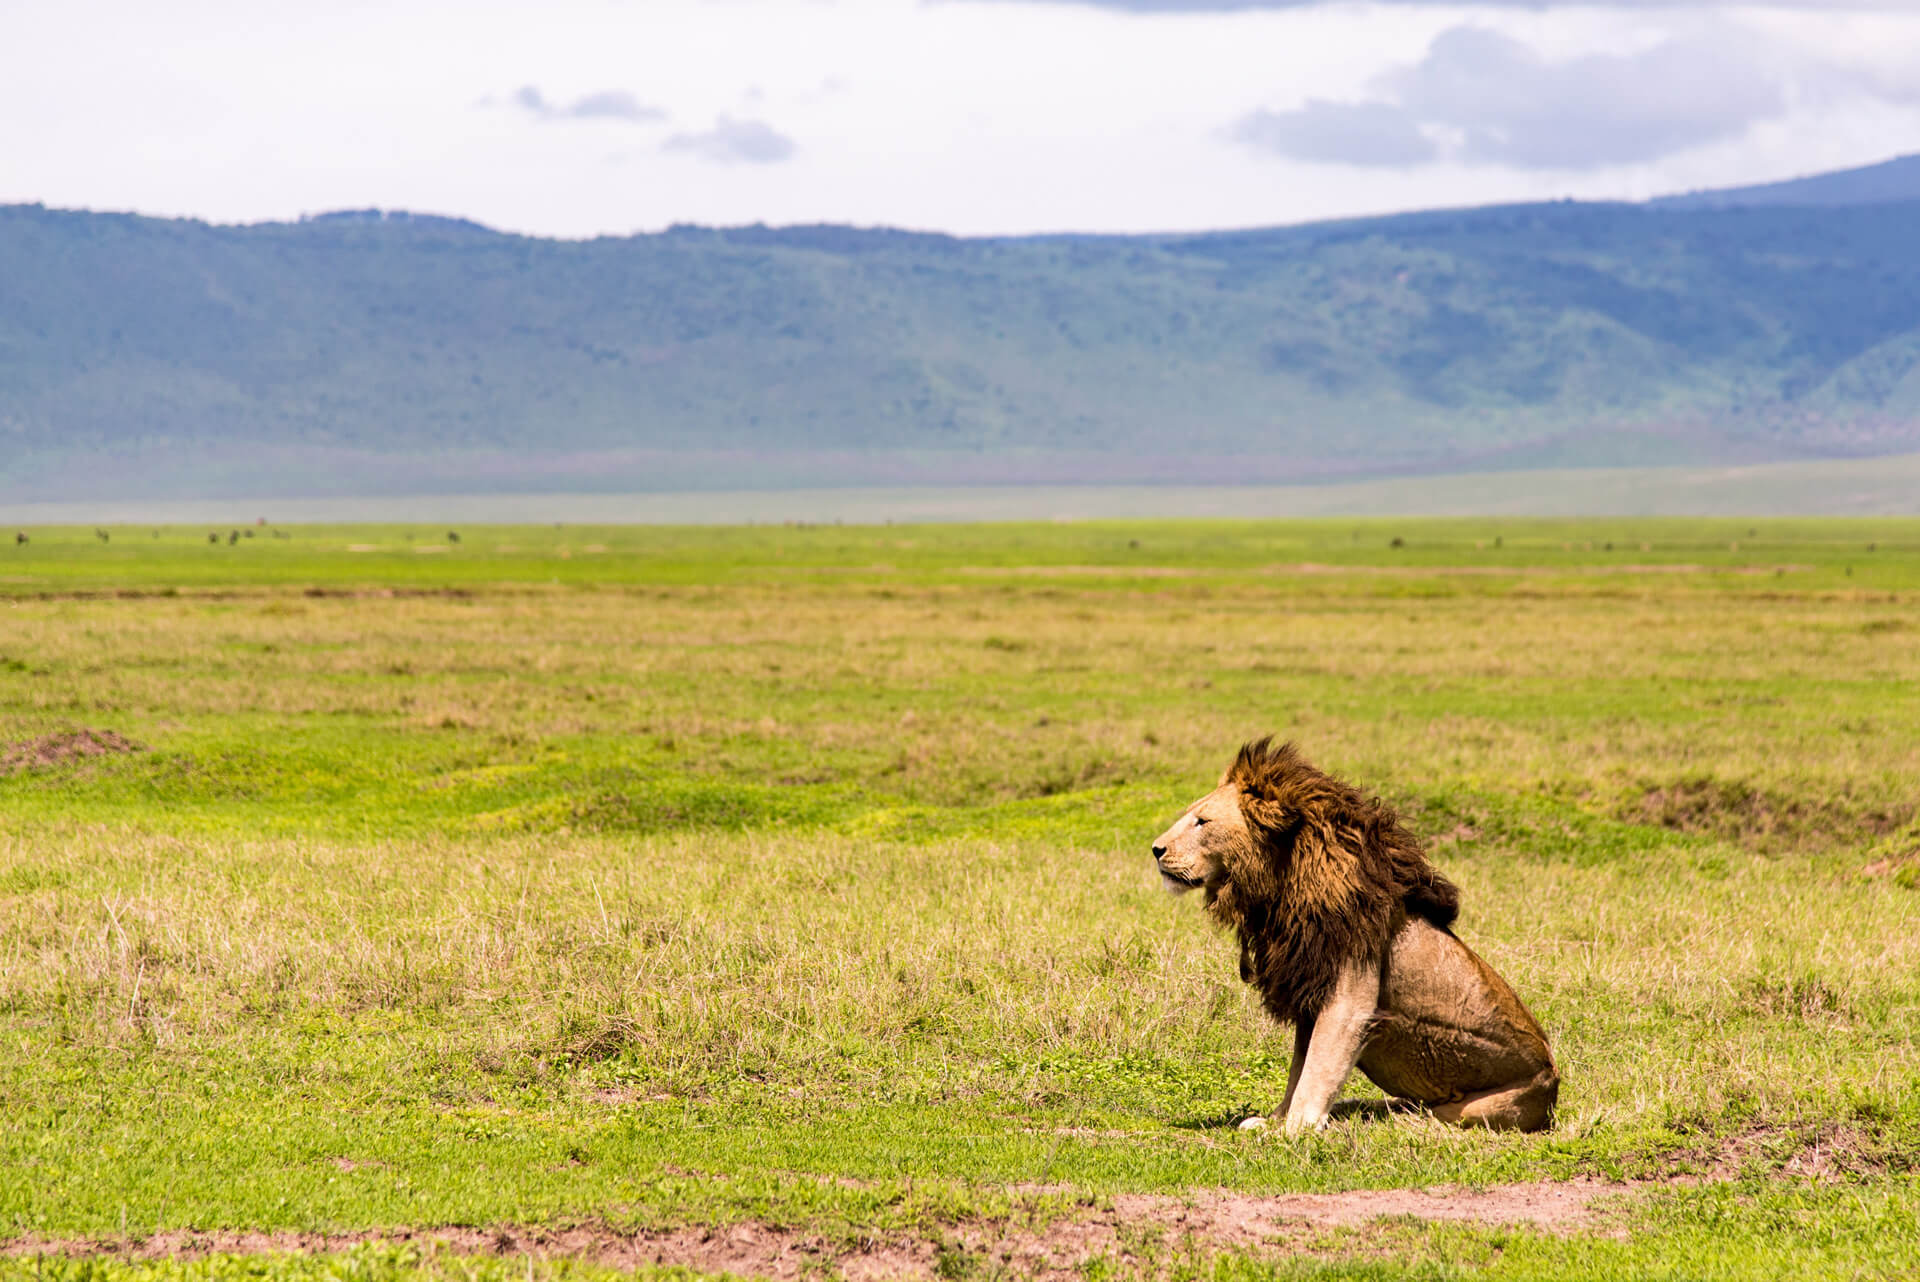 A Masai lion in the Ngurunguru Crater (photo: planetreserve.com)